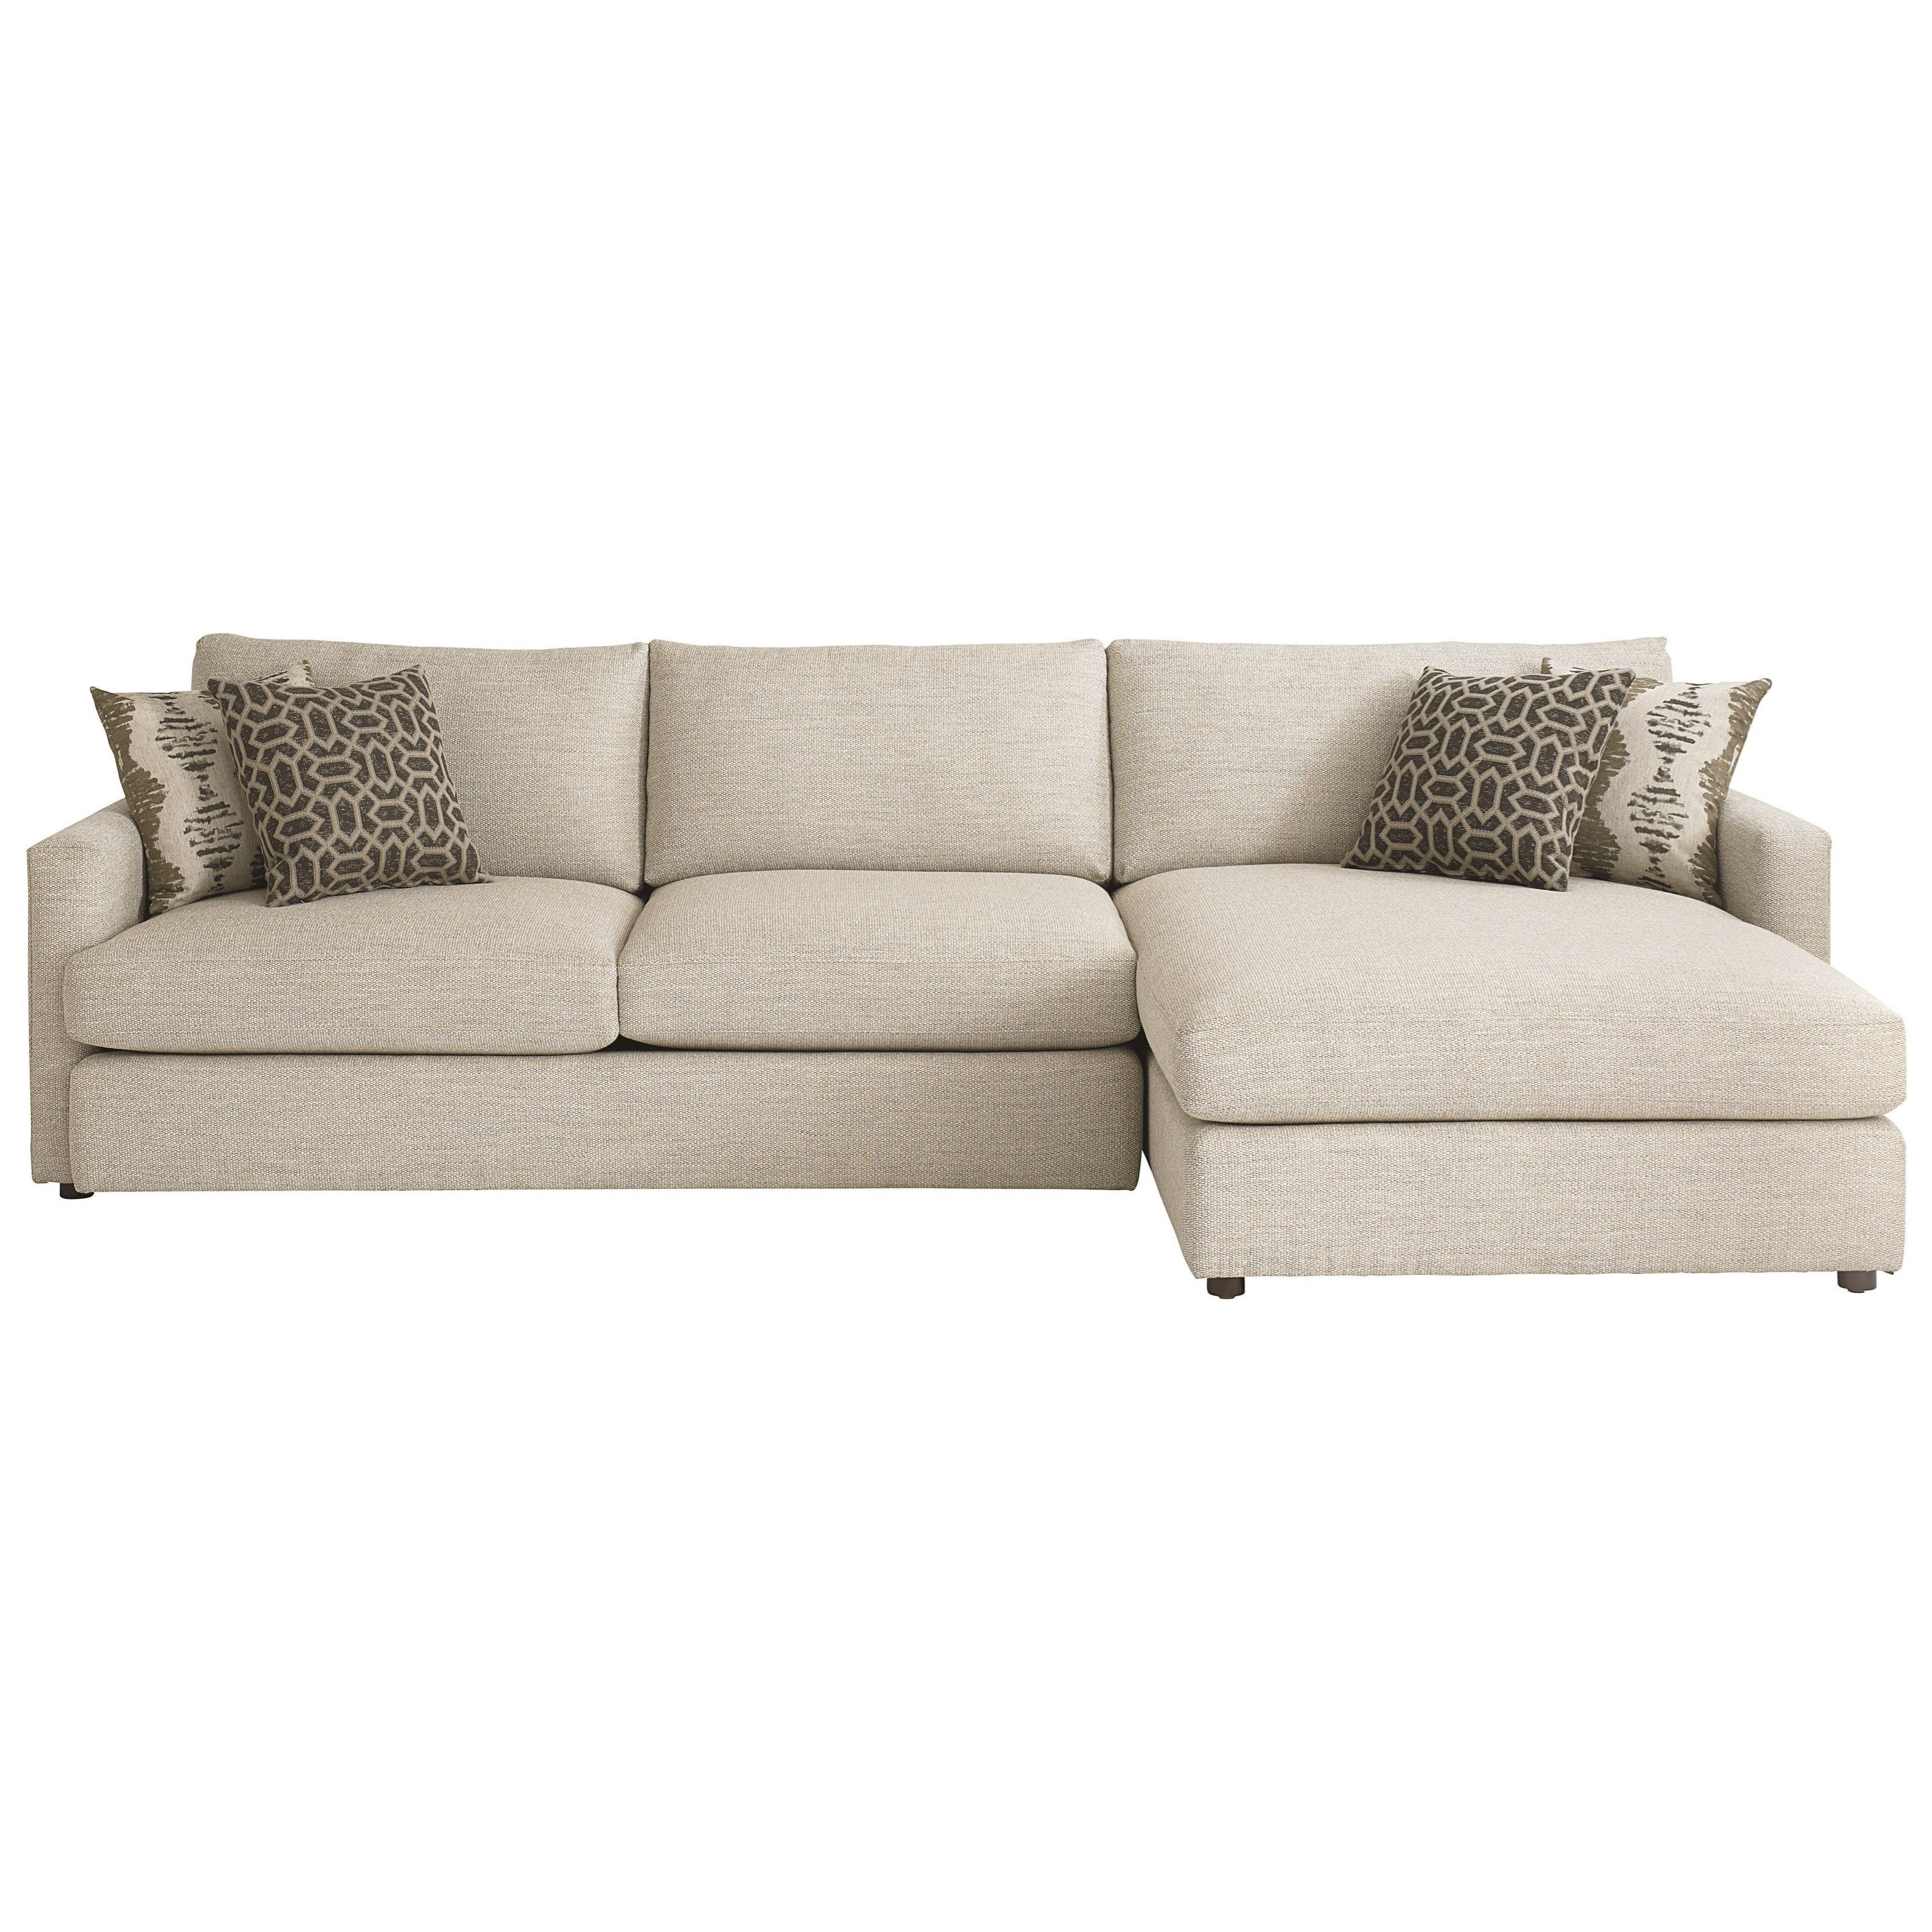 bassett allure contemporary sectional with right arm With bassett sectional sofa with chaise